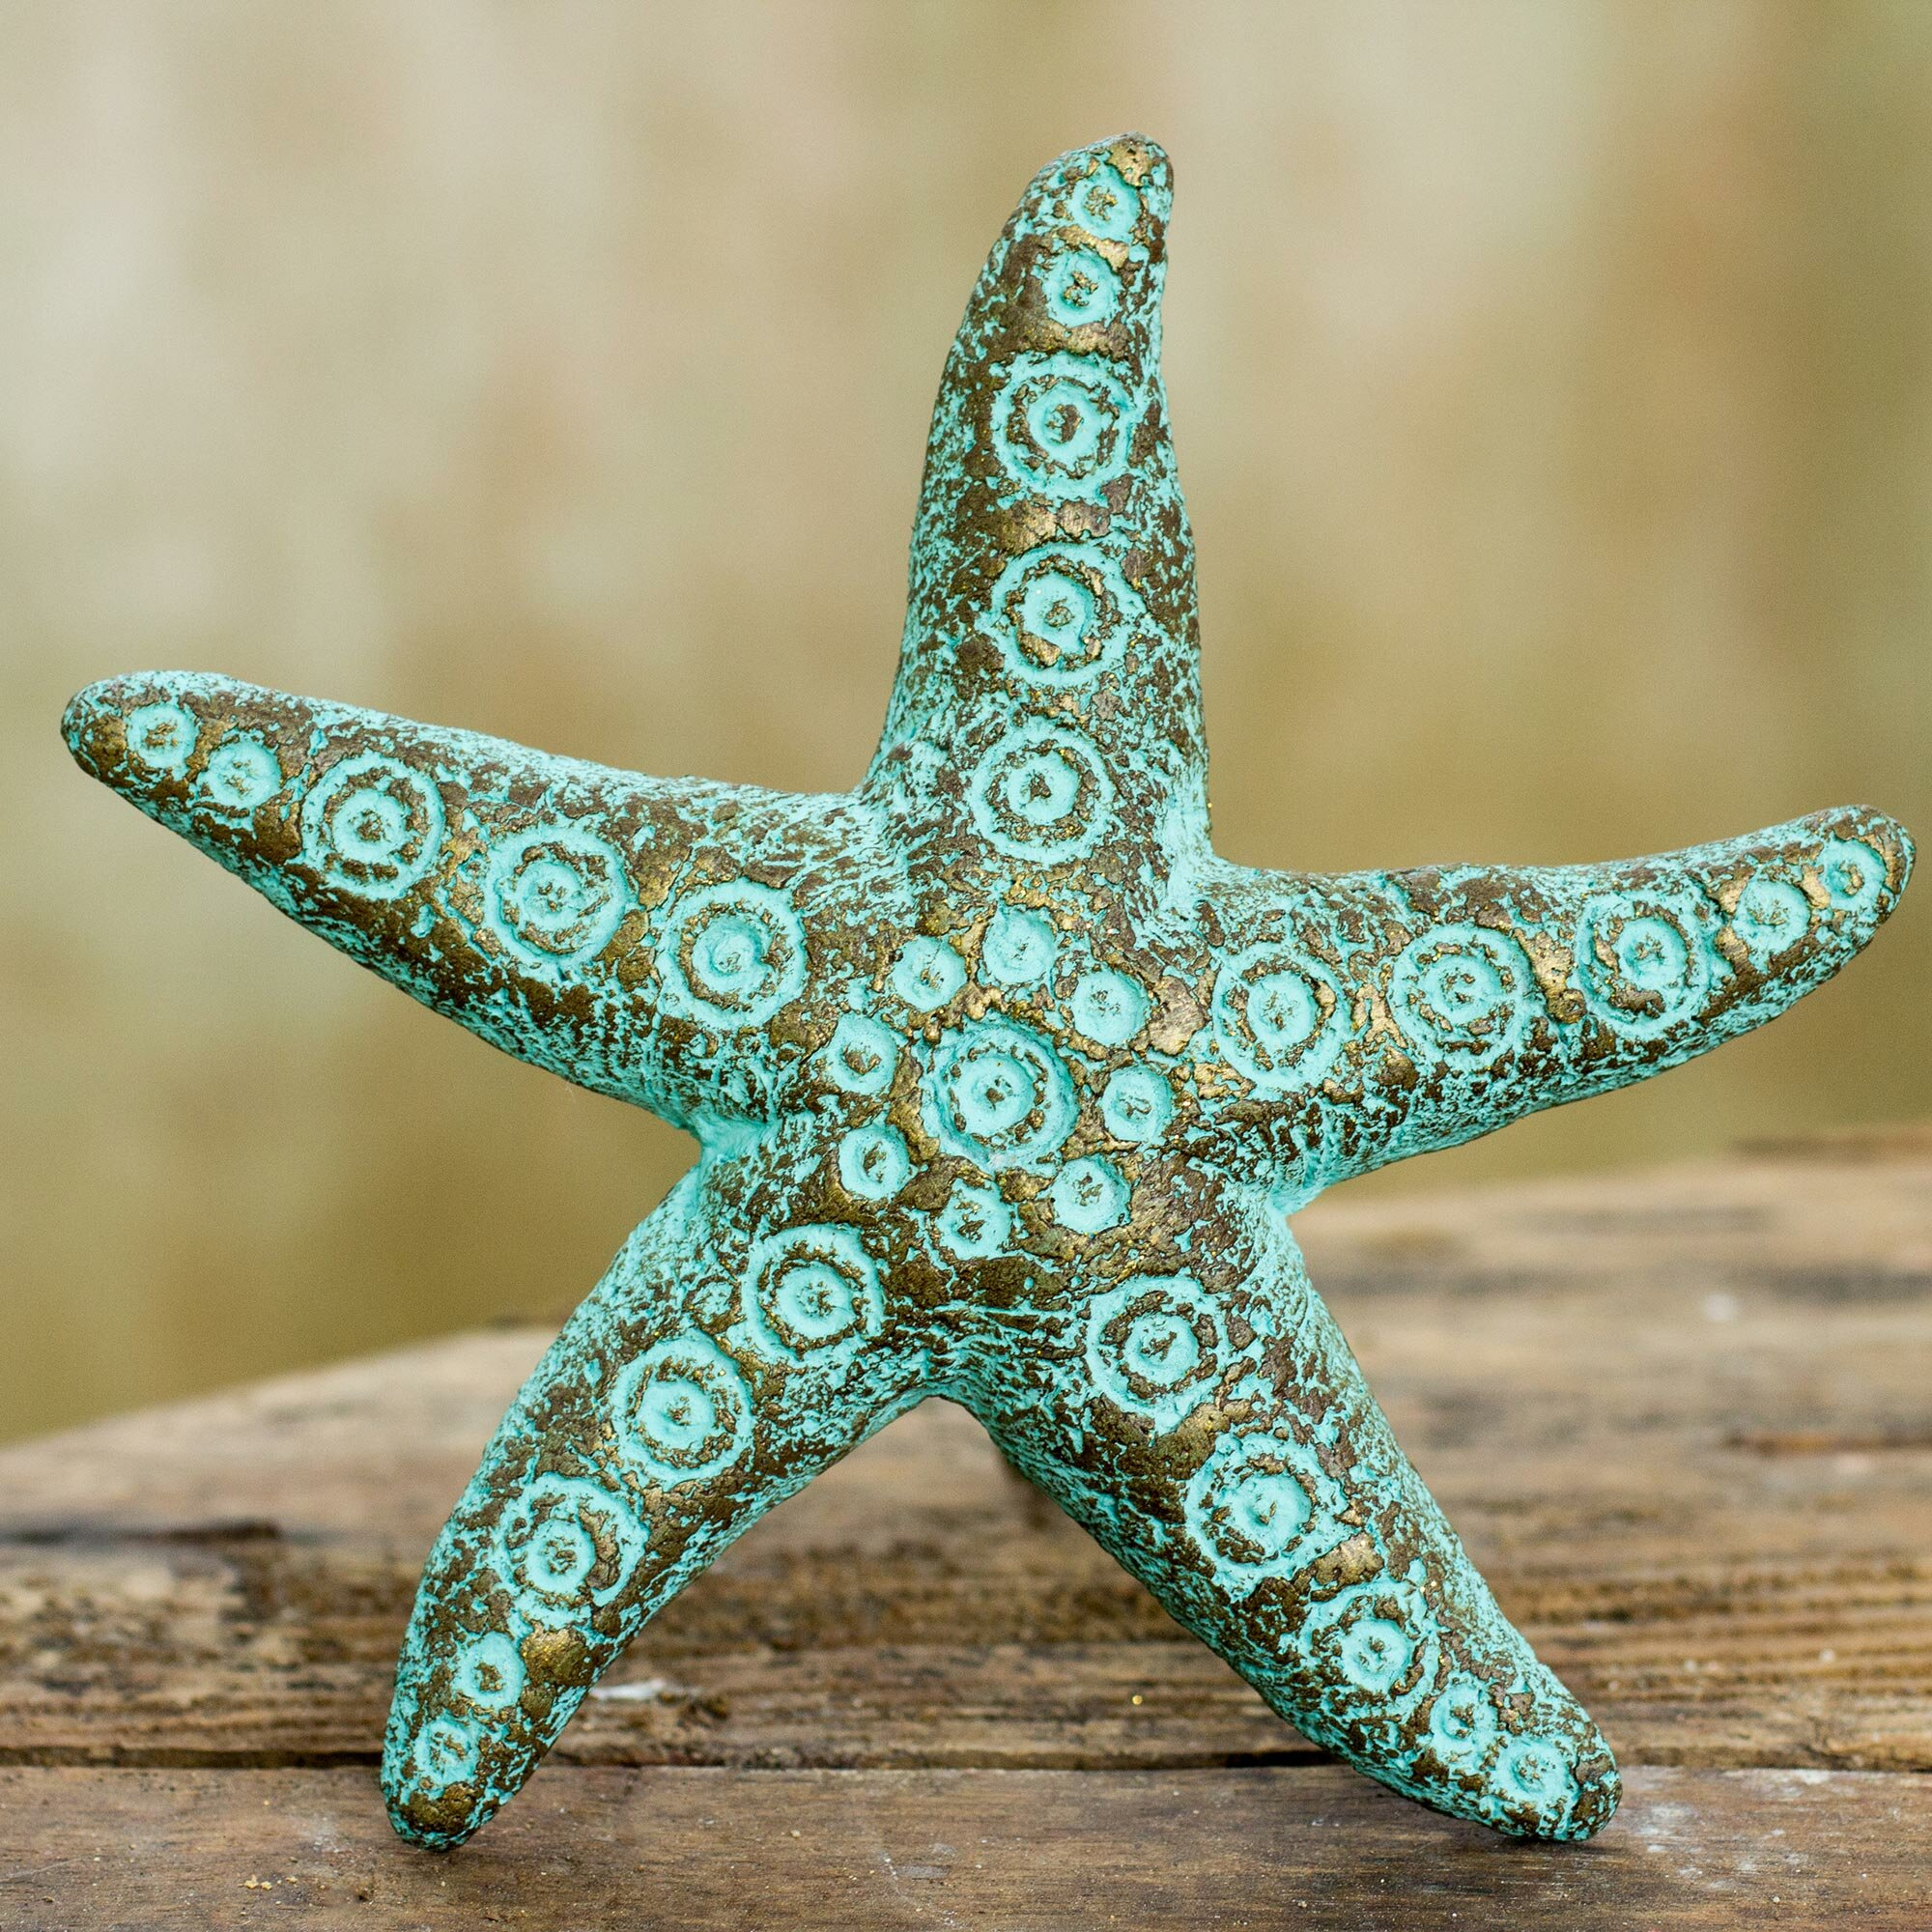 Chicken Wire Starfish Center Plumbingwarehousecom Delta Bathroom Faucet Parts For Model 2540 Novica Unique Recycled Paper Wall D Cor Reviews Rh Wayfair Com Easy Art Bead And